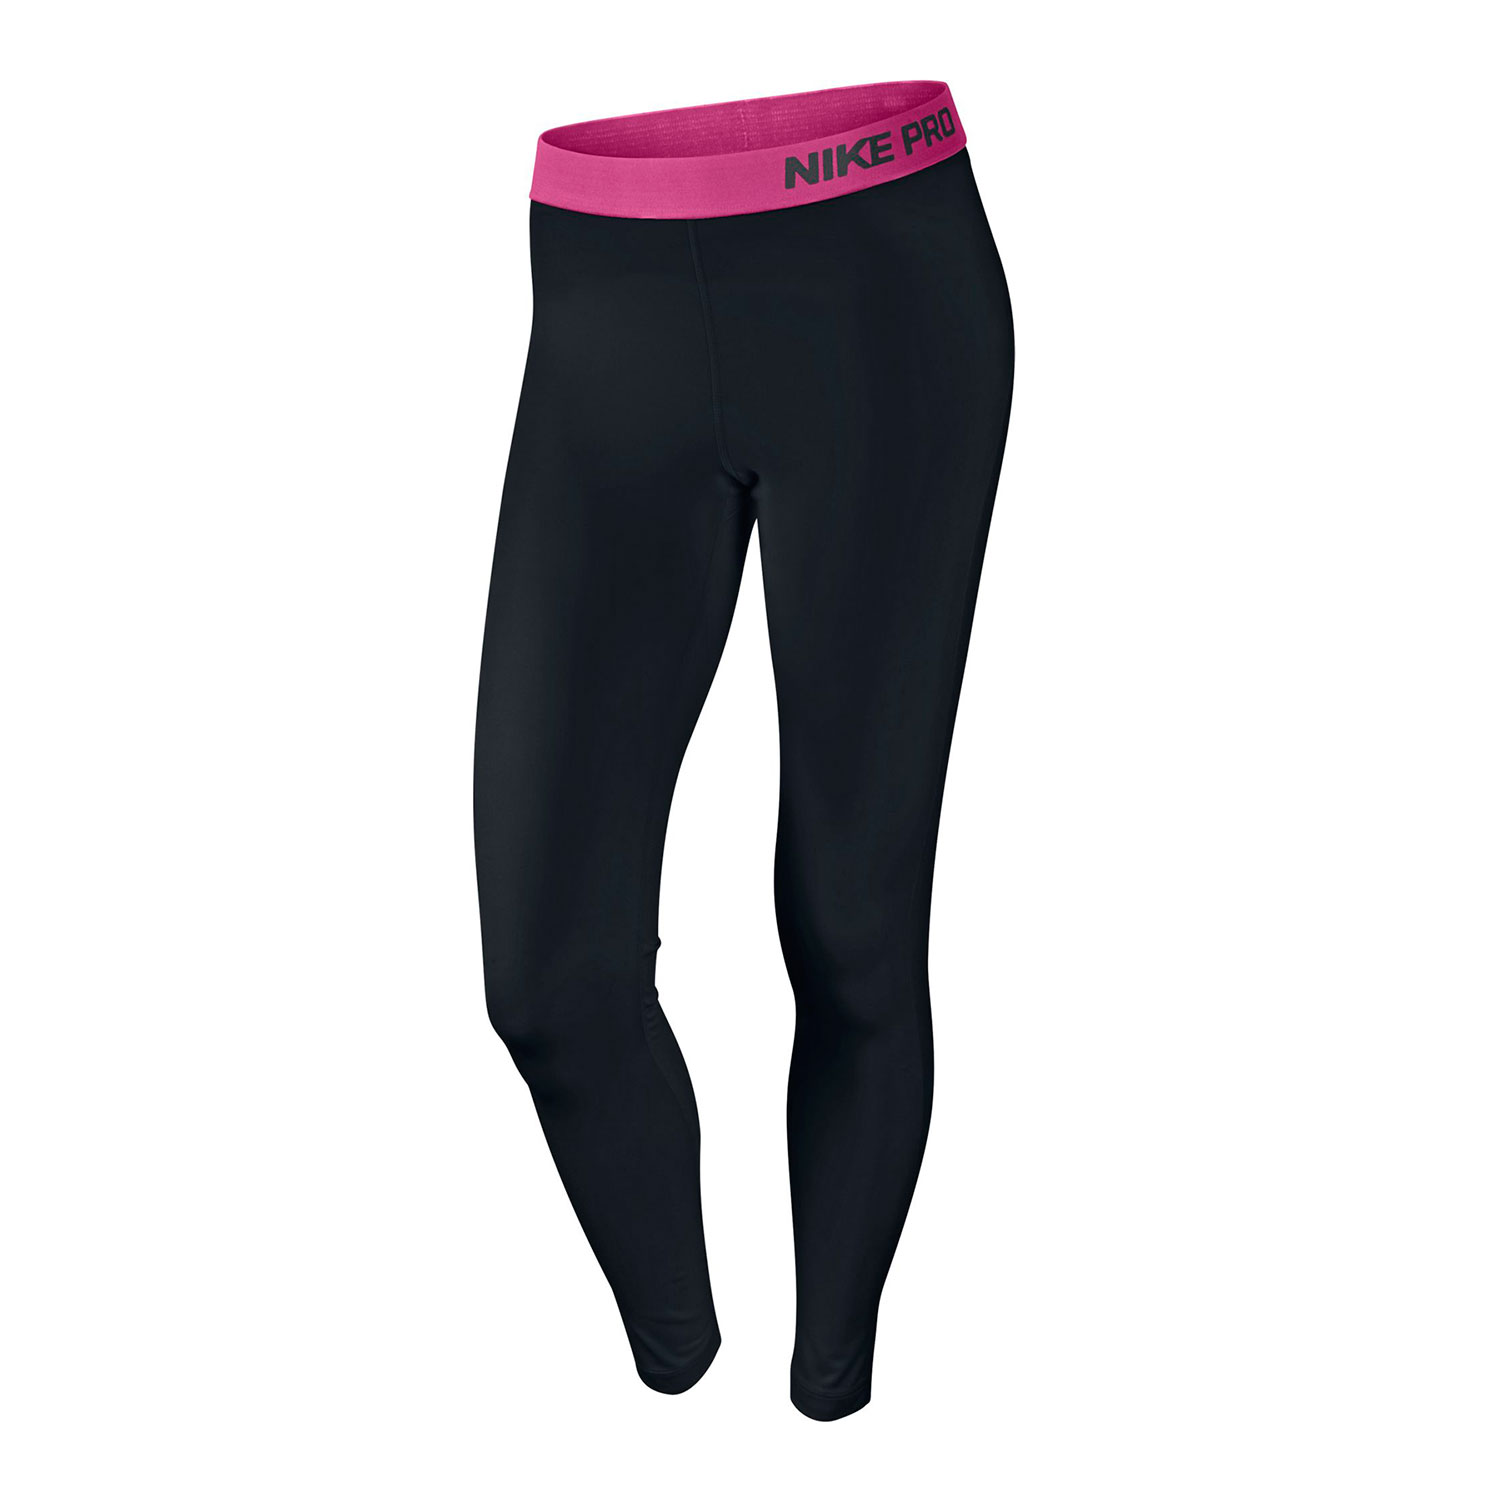 903195ed8a1 Womens Compression Pants  Reviews and Recommendations